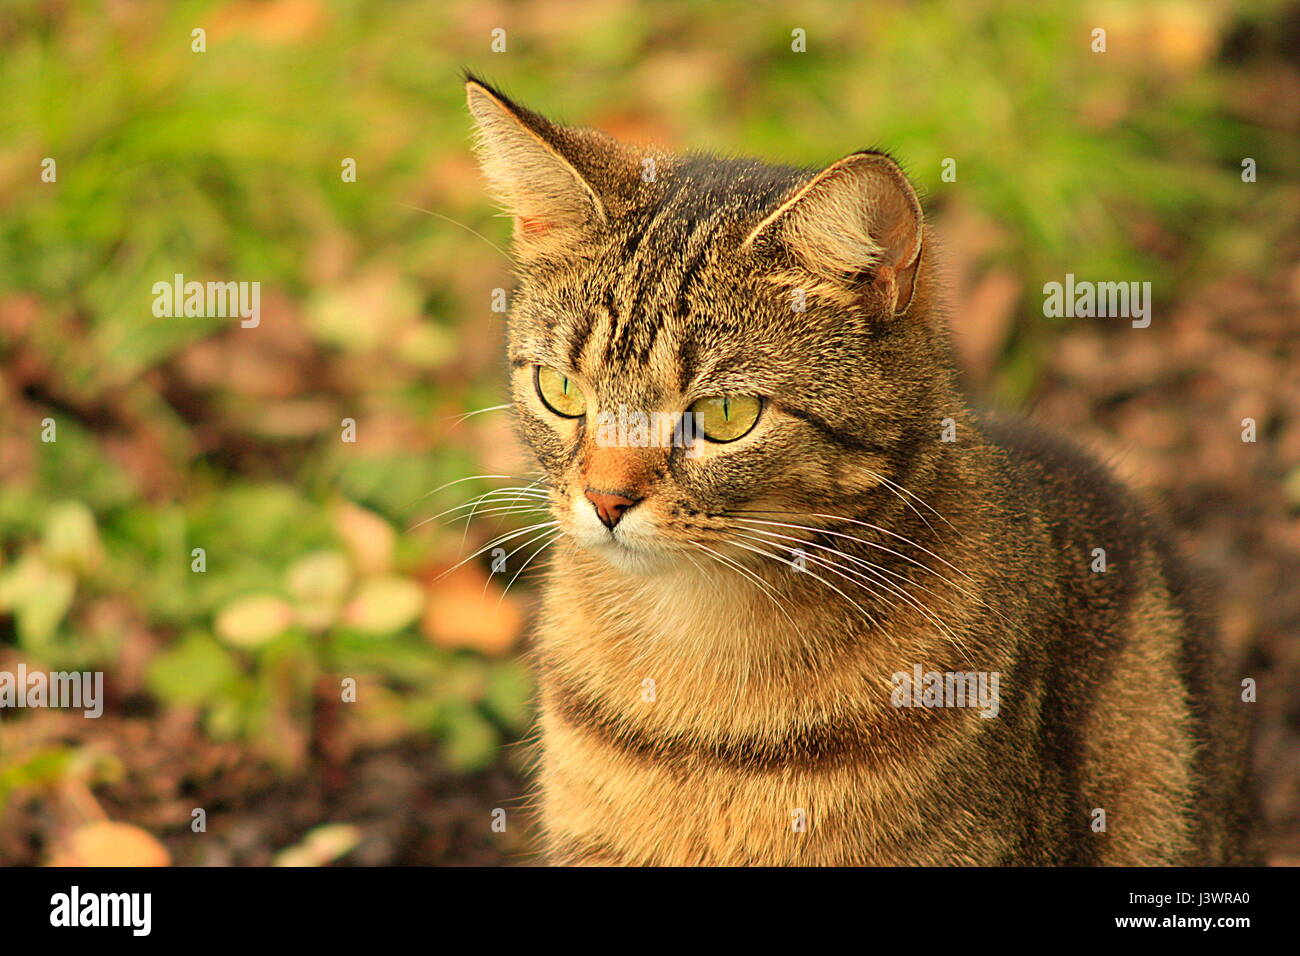 Close up of an isolated young tabby cat outside with blurred out background - Stock Image